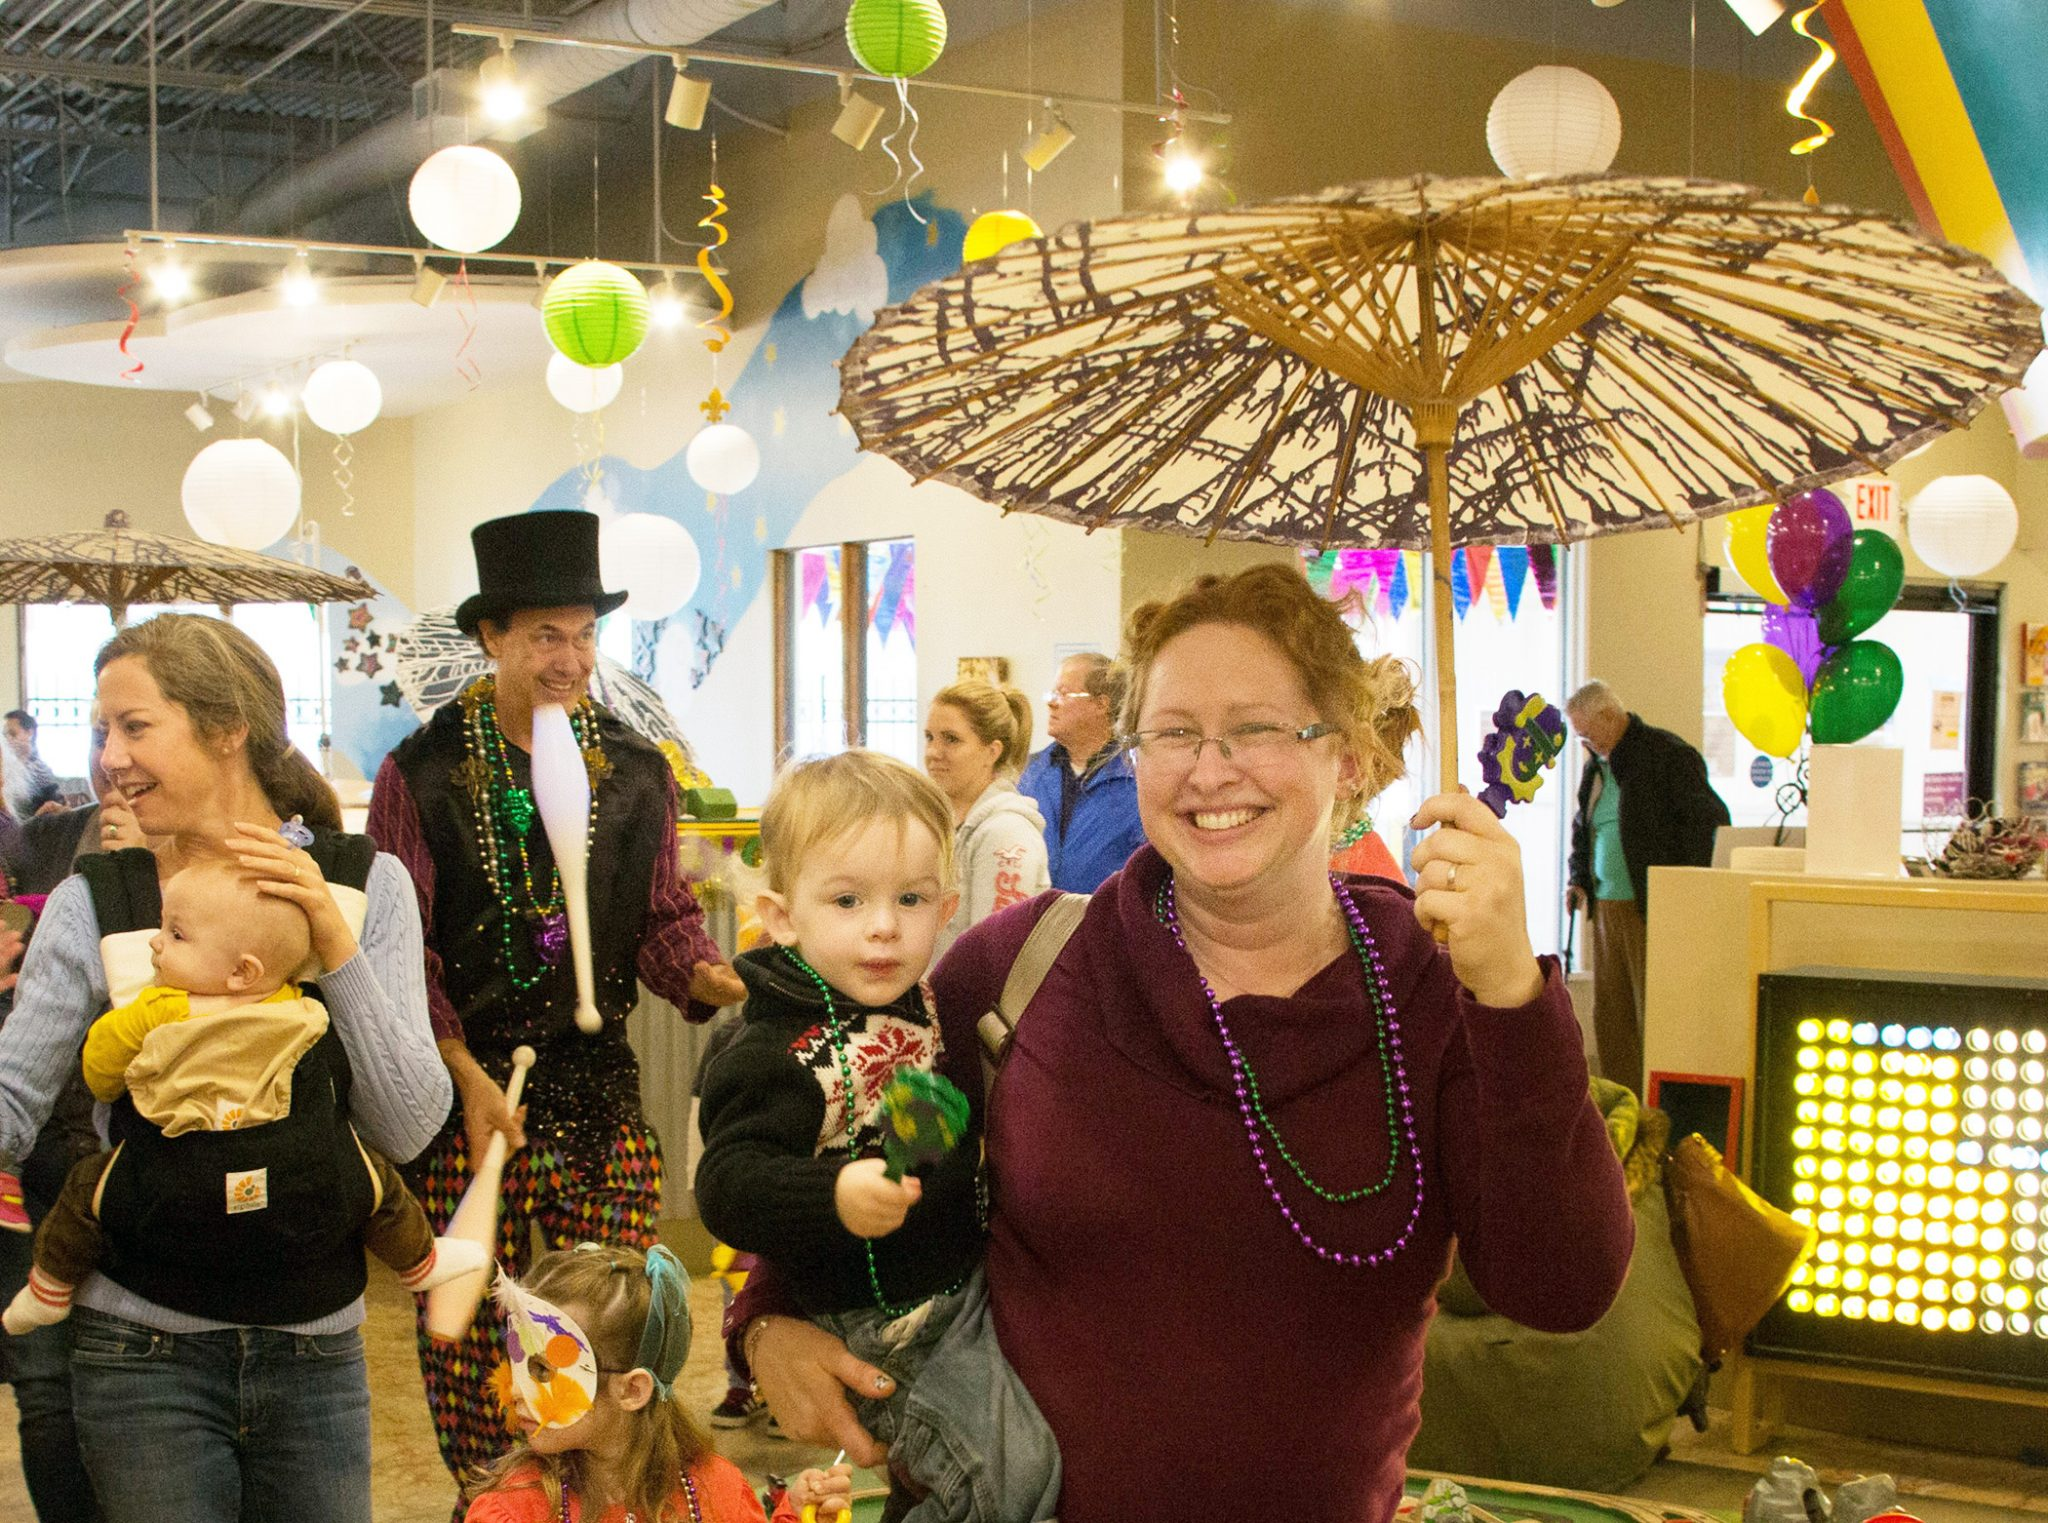 Mardi Gras Celebration Is Packed with Fun, Food and Parades — The Woodlands Children's Museum hosts party for families onTuesday, Feb. 13